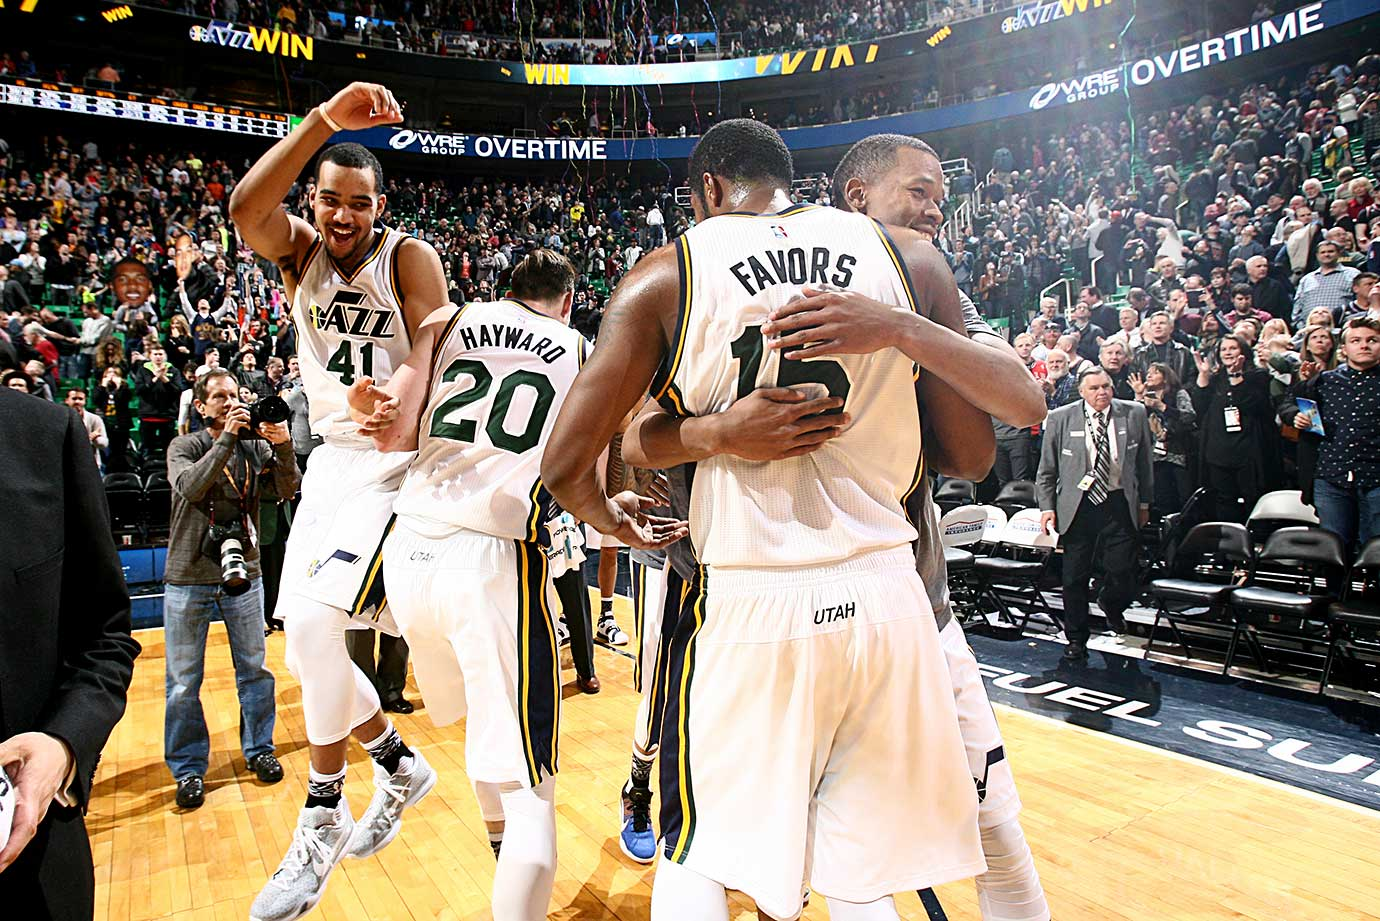 The Utah Jazz celebrate their victory over the Chicago Bulls at EnergySolutions Arena in Salt Lake City.